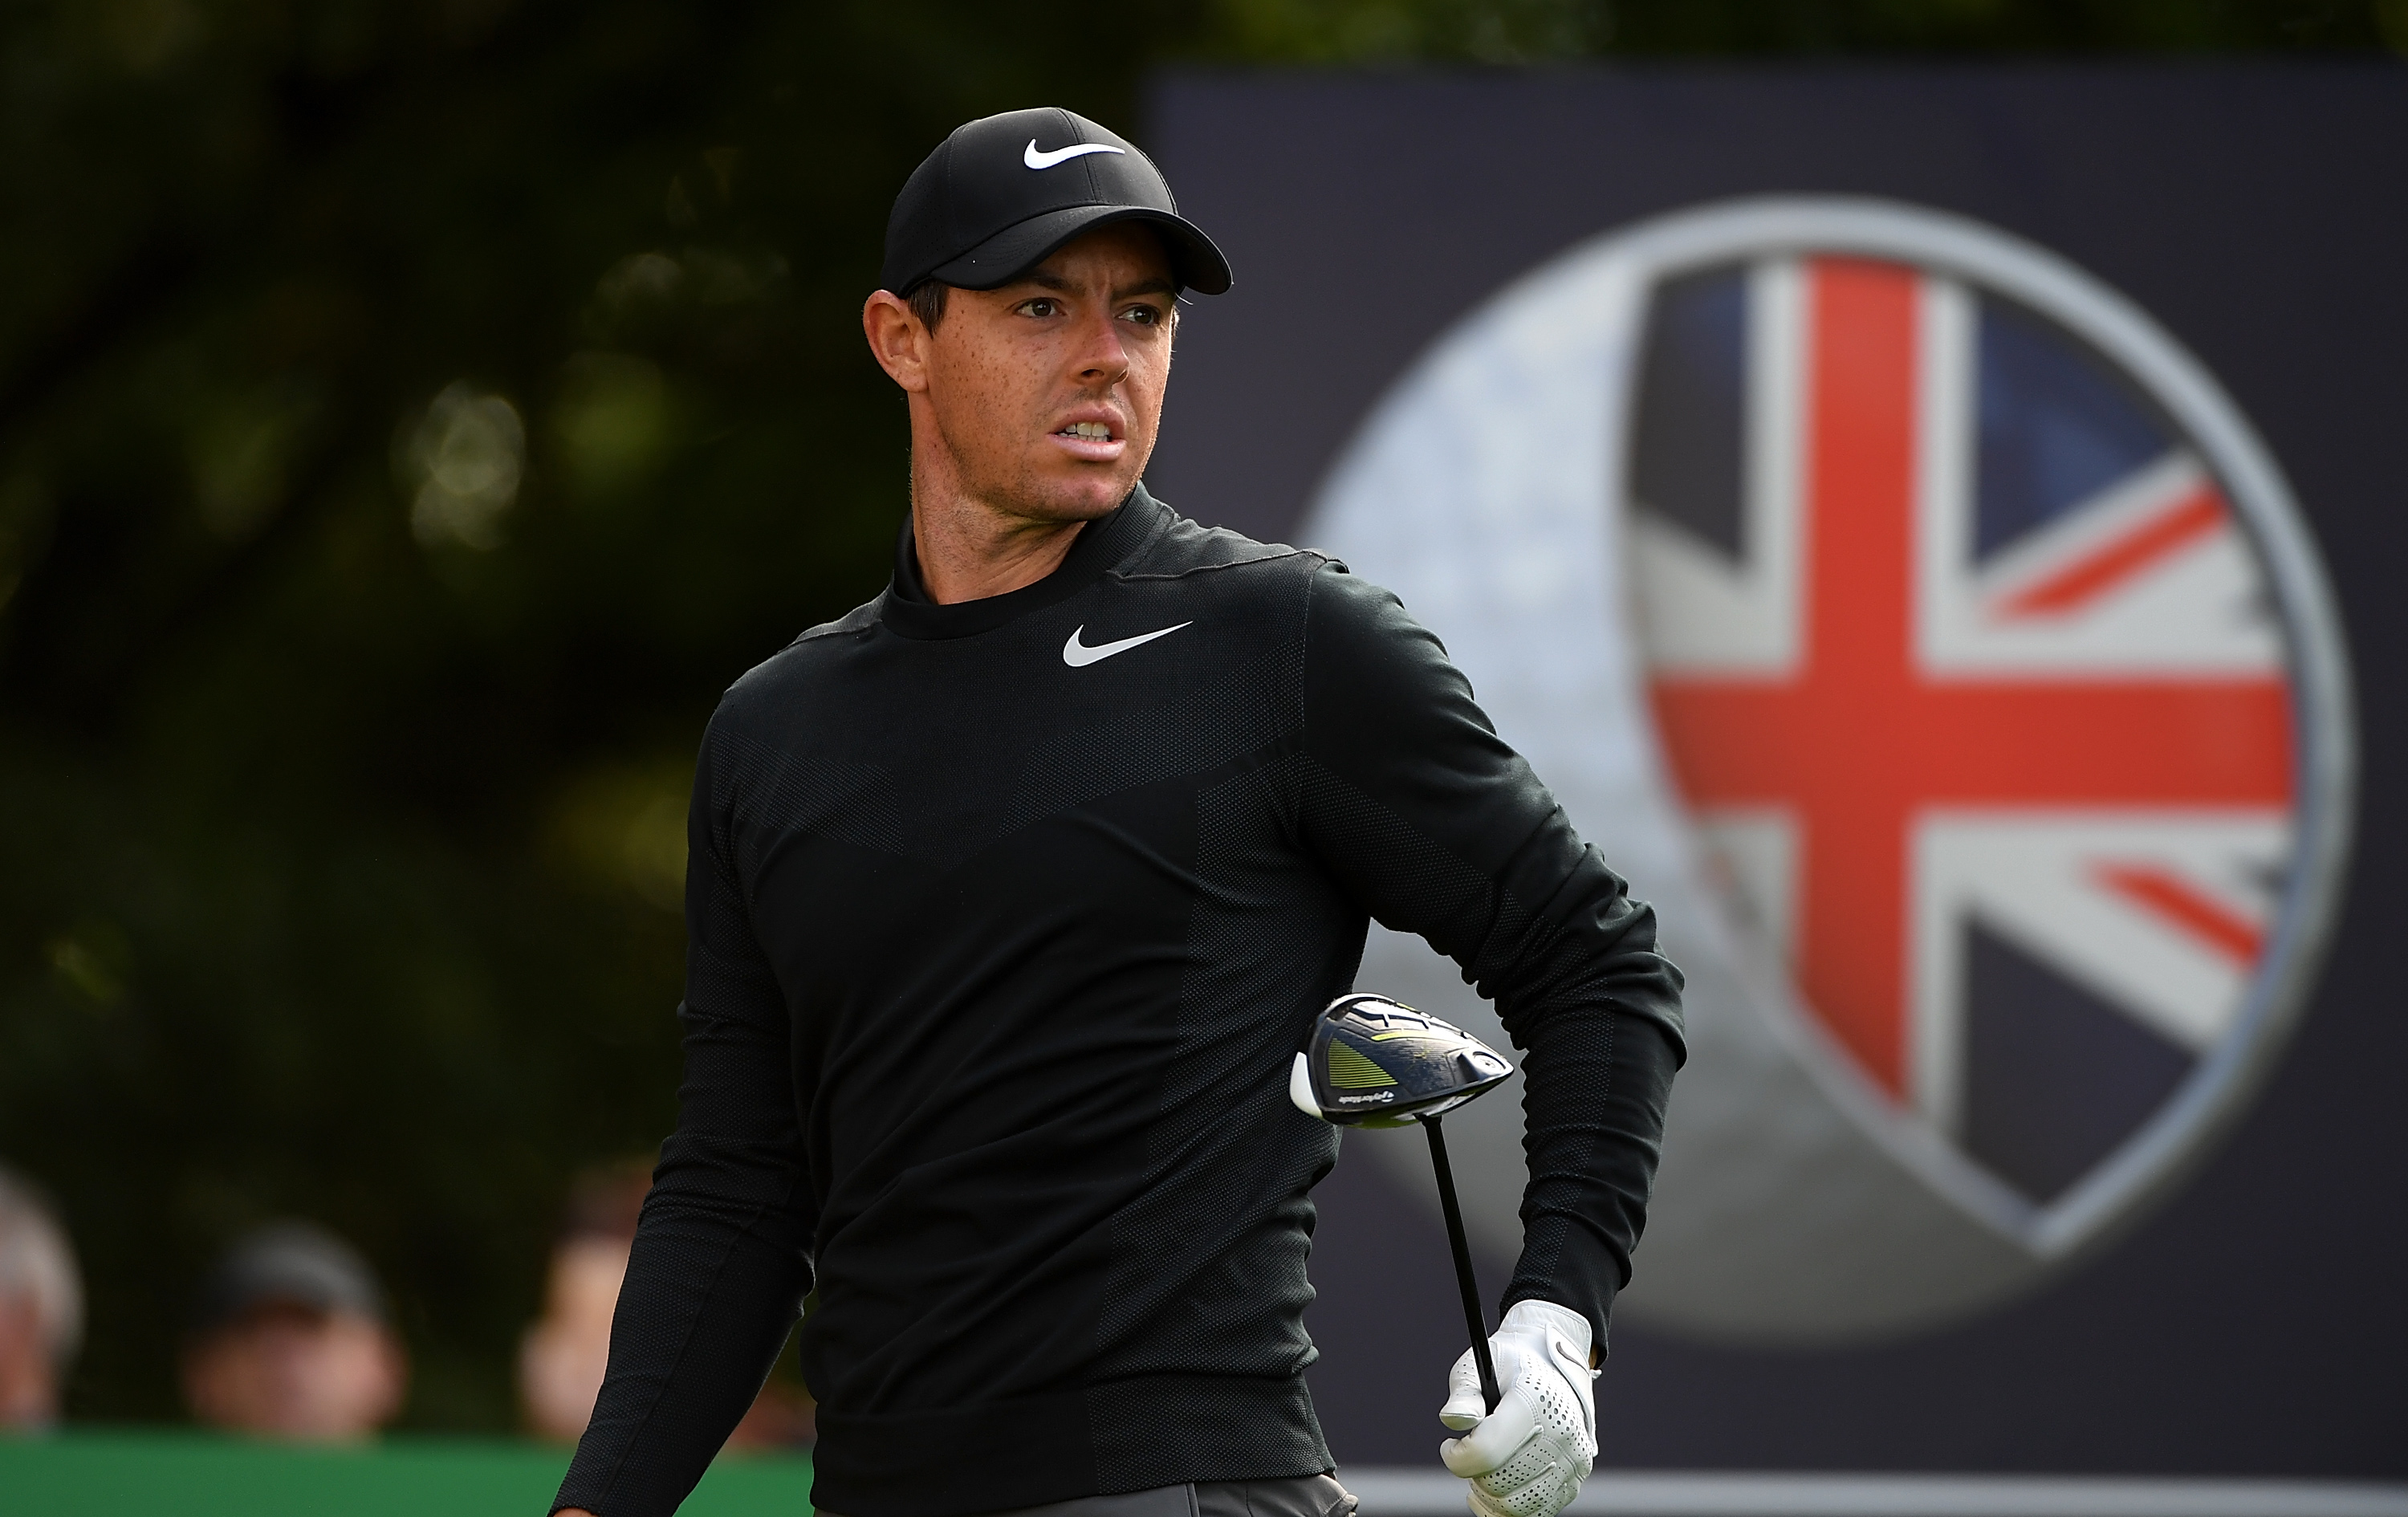 Rory McIlroy, rested after layoff, has hectic 2018 season planned